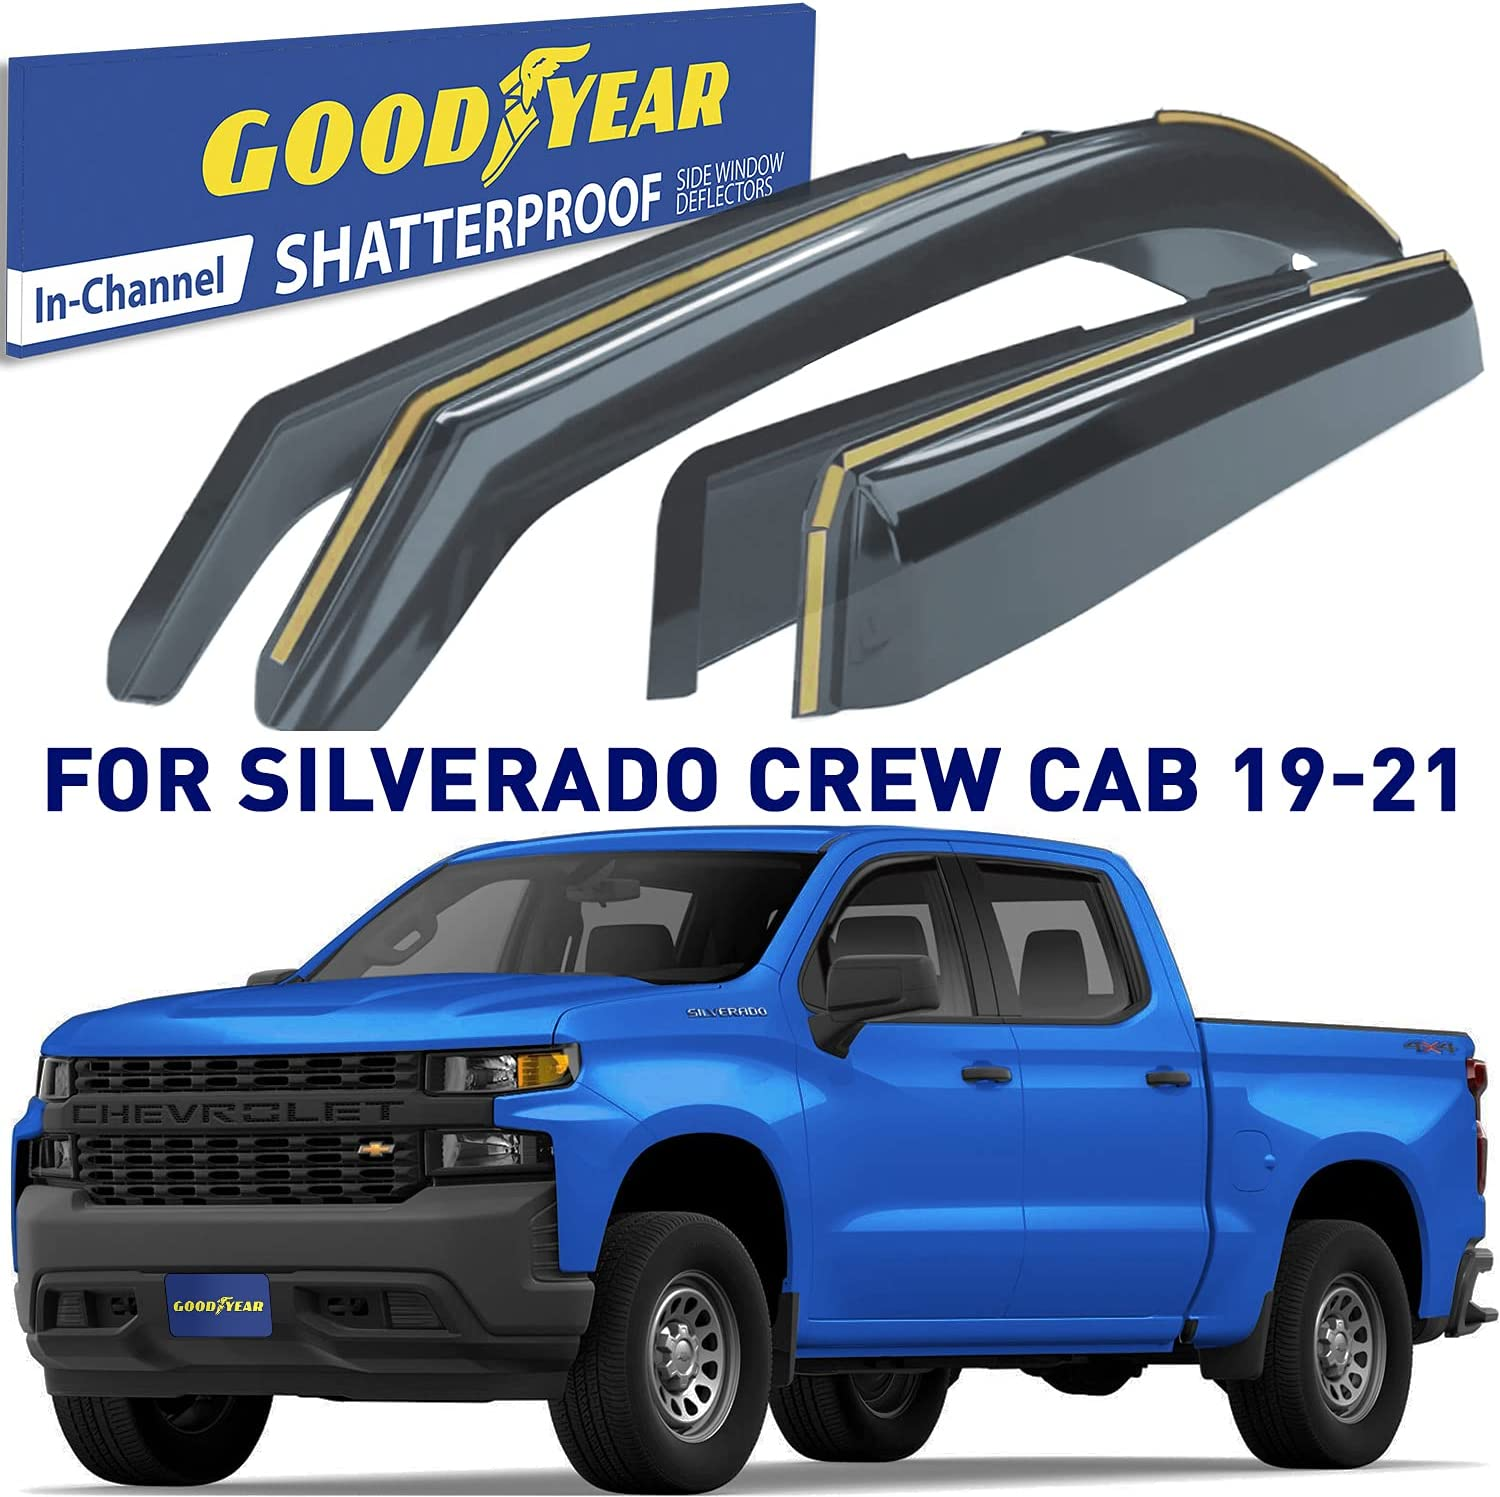 Goodyear Shatterproof in-Channel Ranking integrated 1st place Window for Ch Max 77% OFF Trucks Deflectors